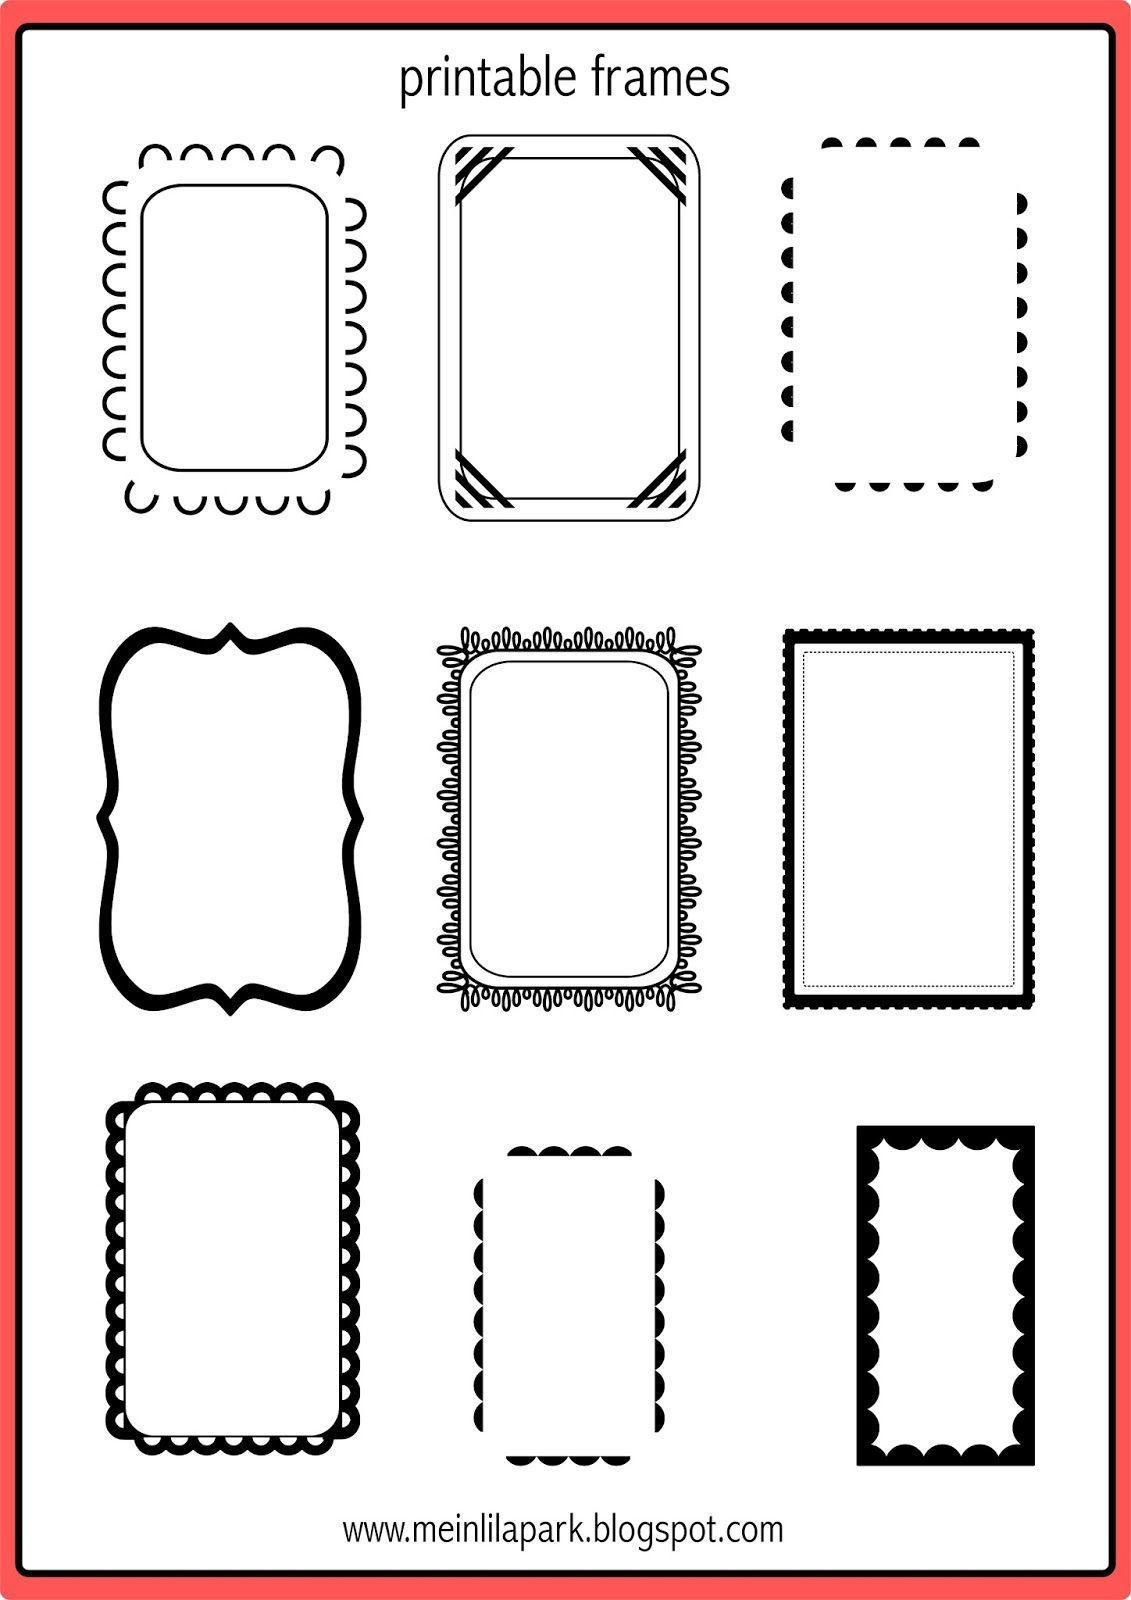 35+ Inspiration Picture Of Scrapbooking Frames Printable - Free Printable Frames For Scrapbooking